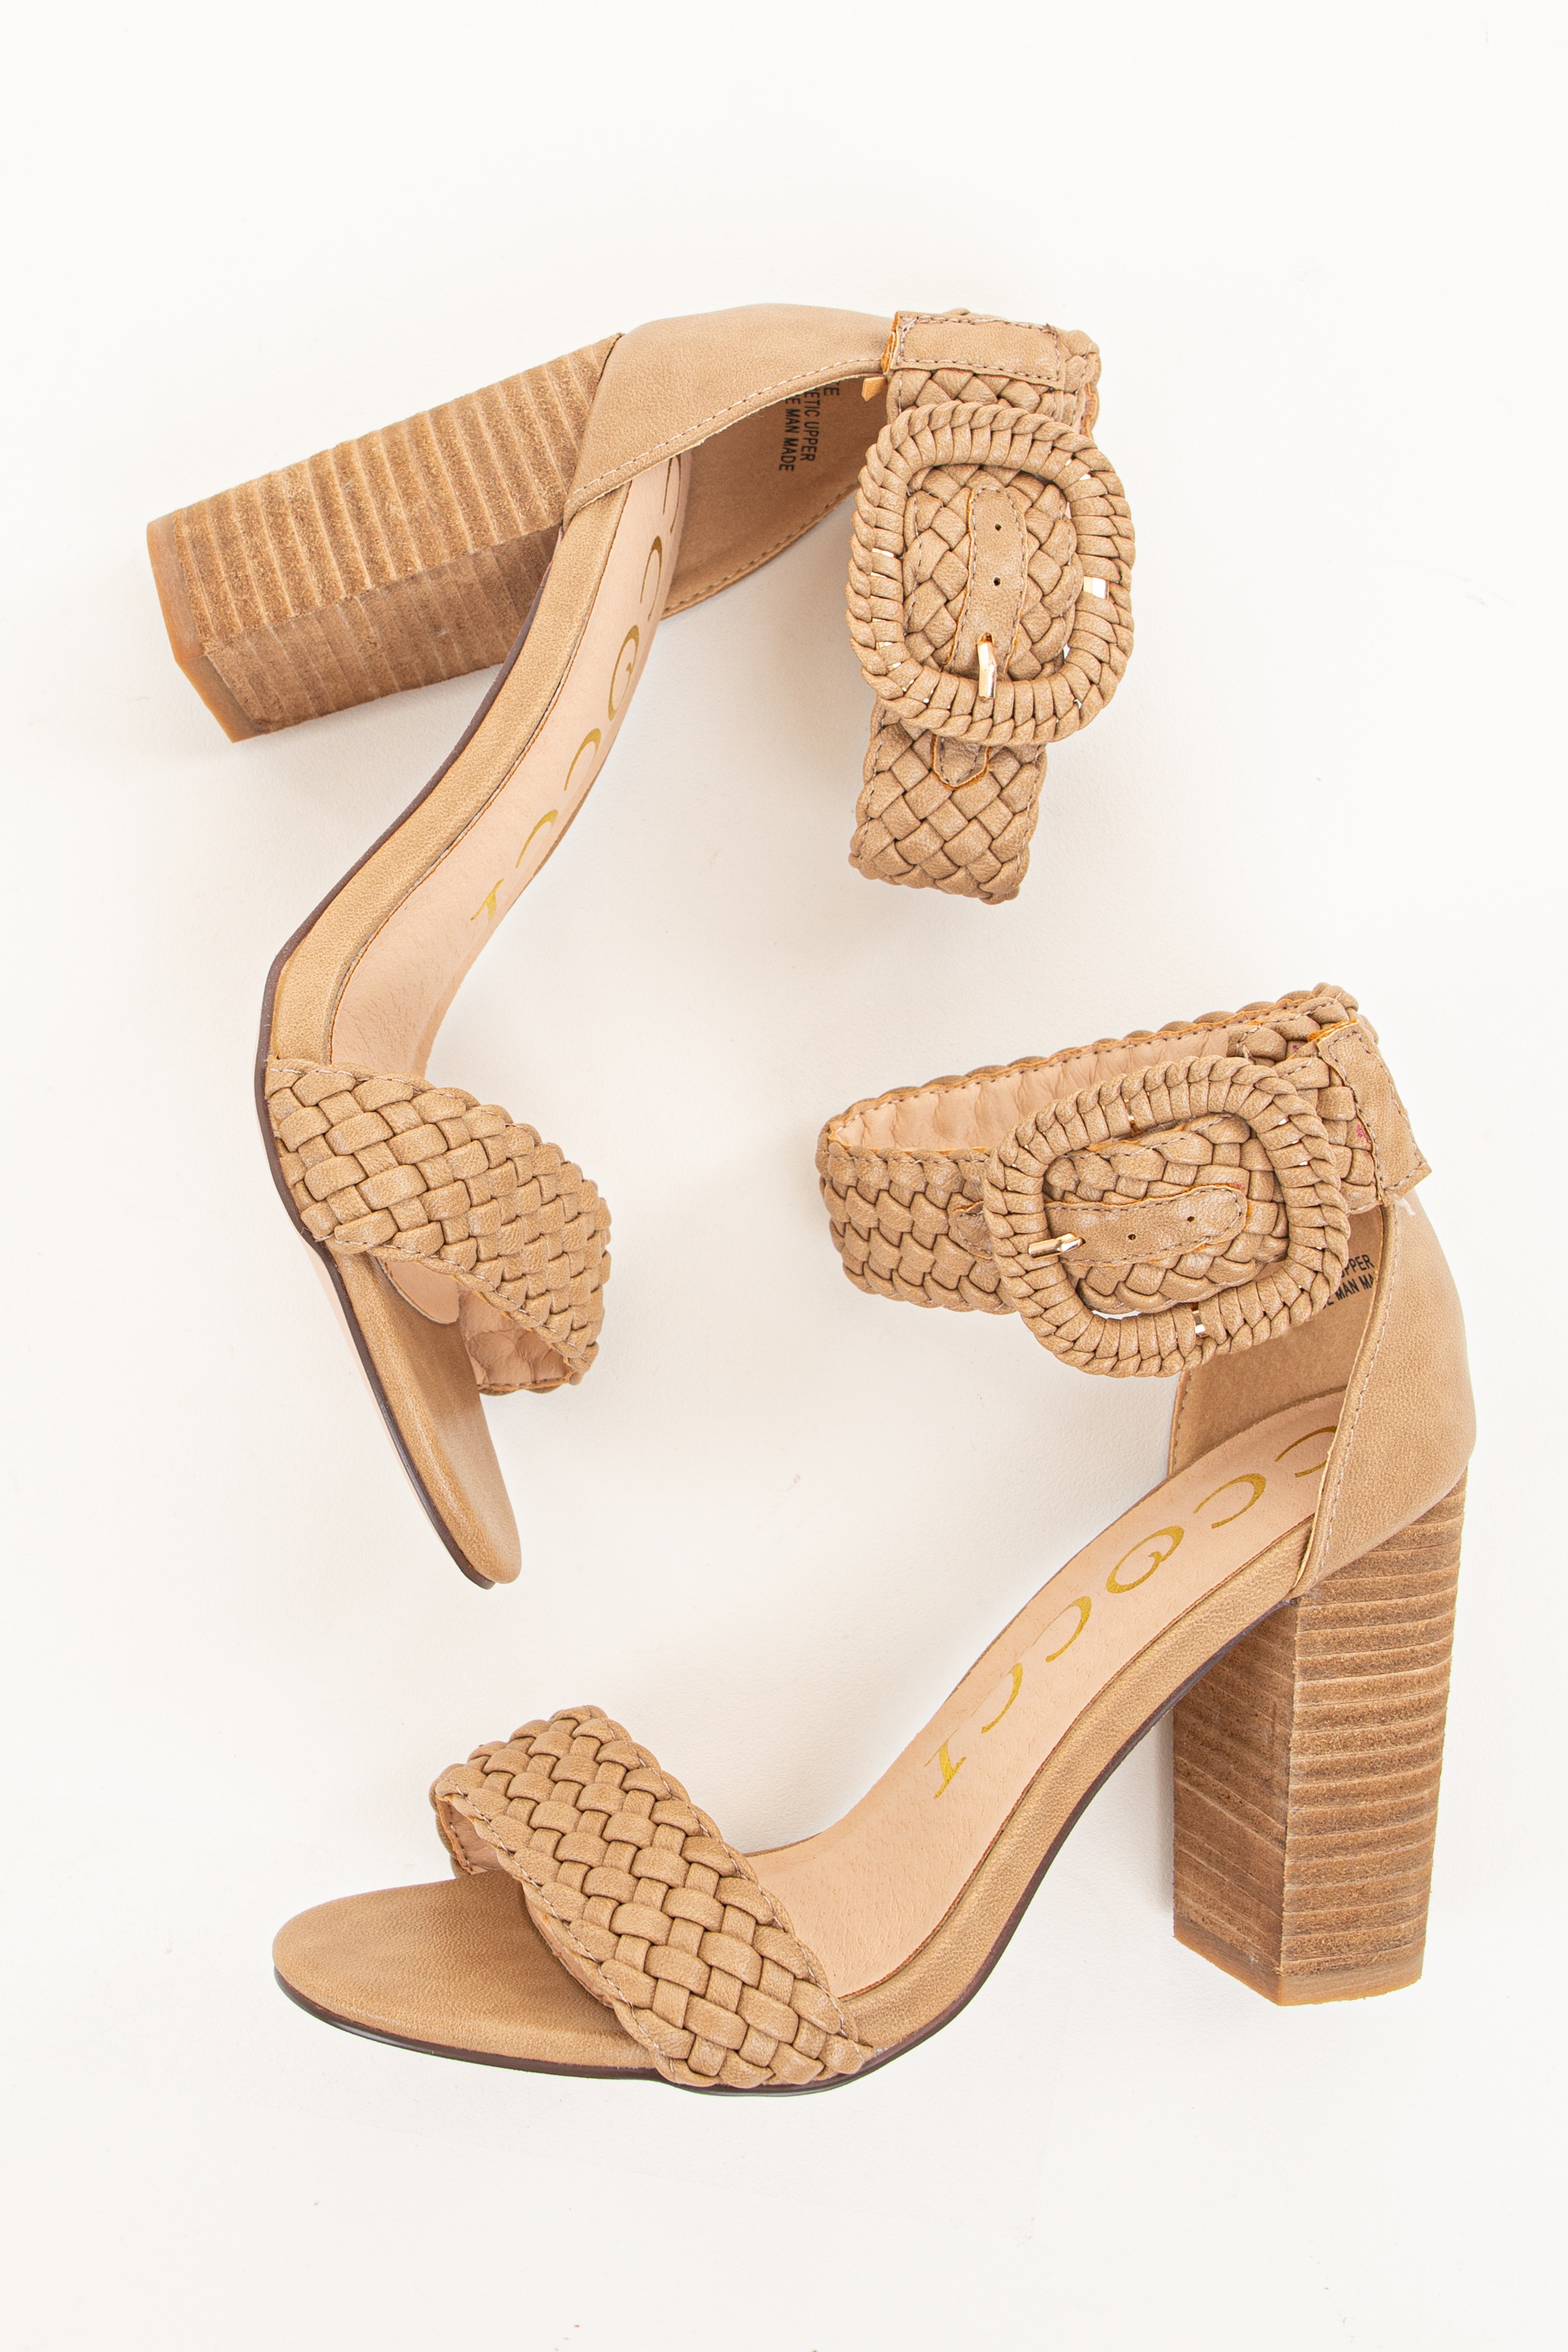 Taupe Faux Leather Heels with Buckle Detail